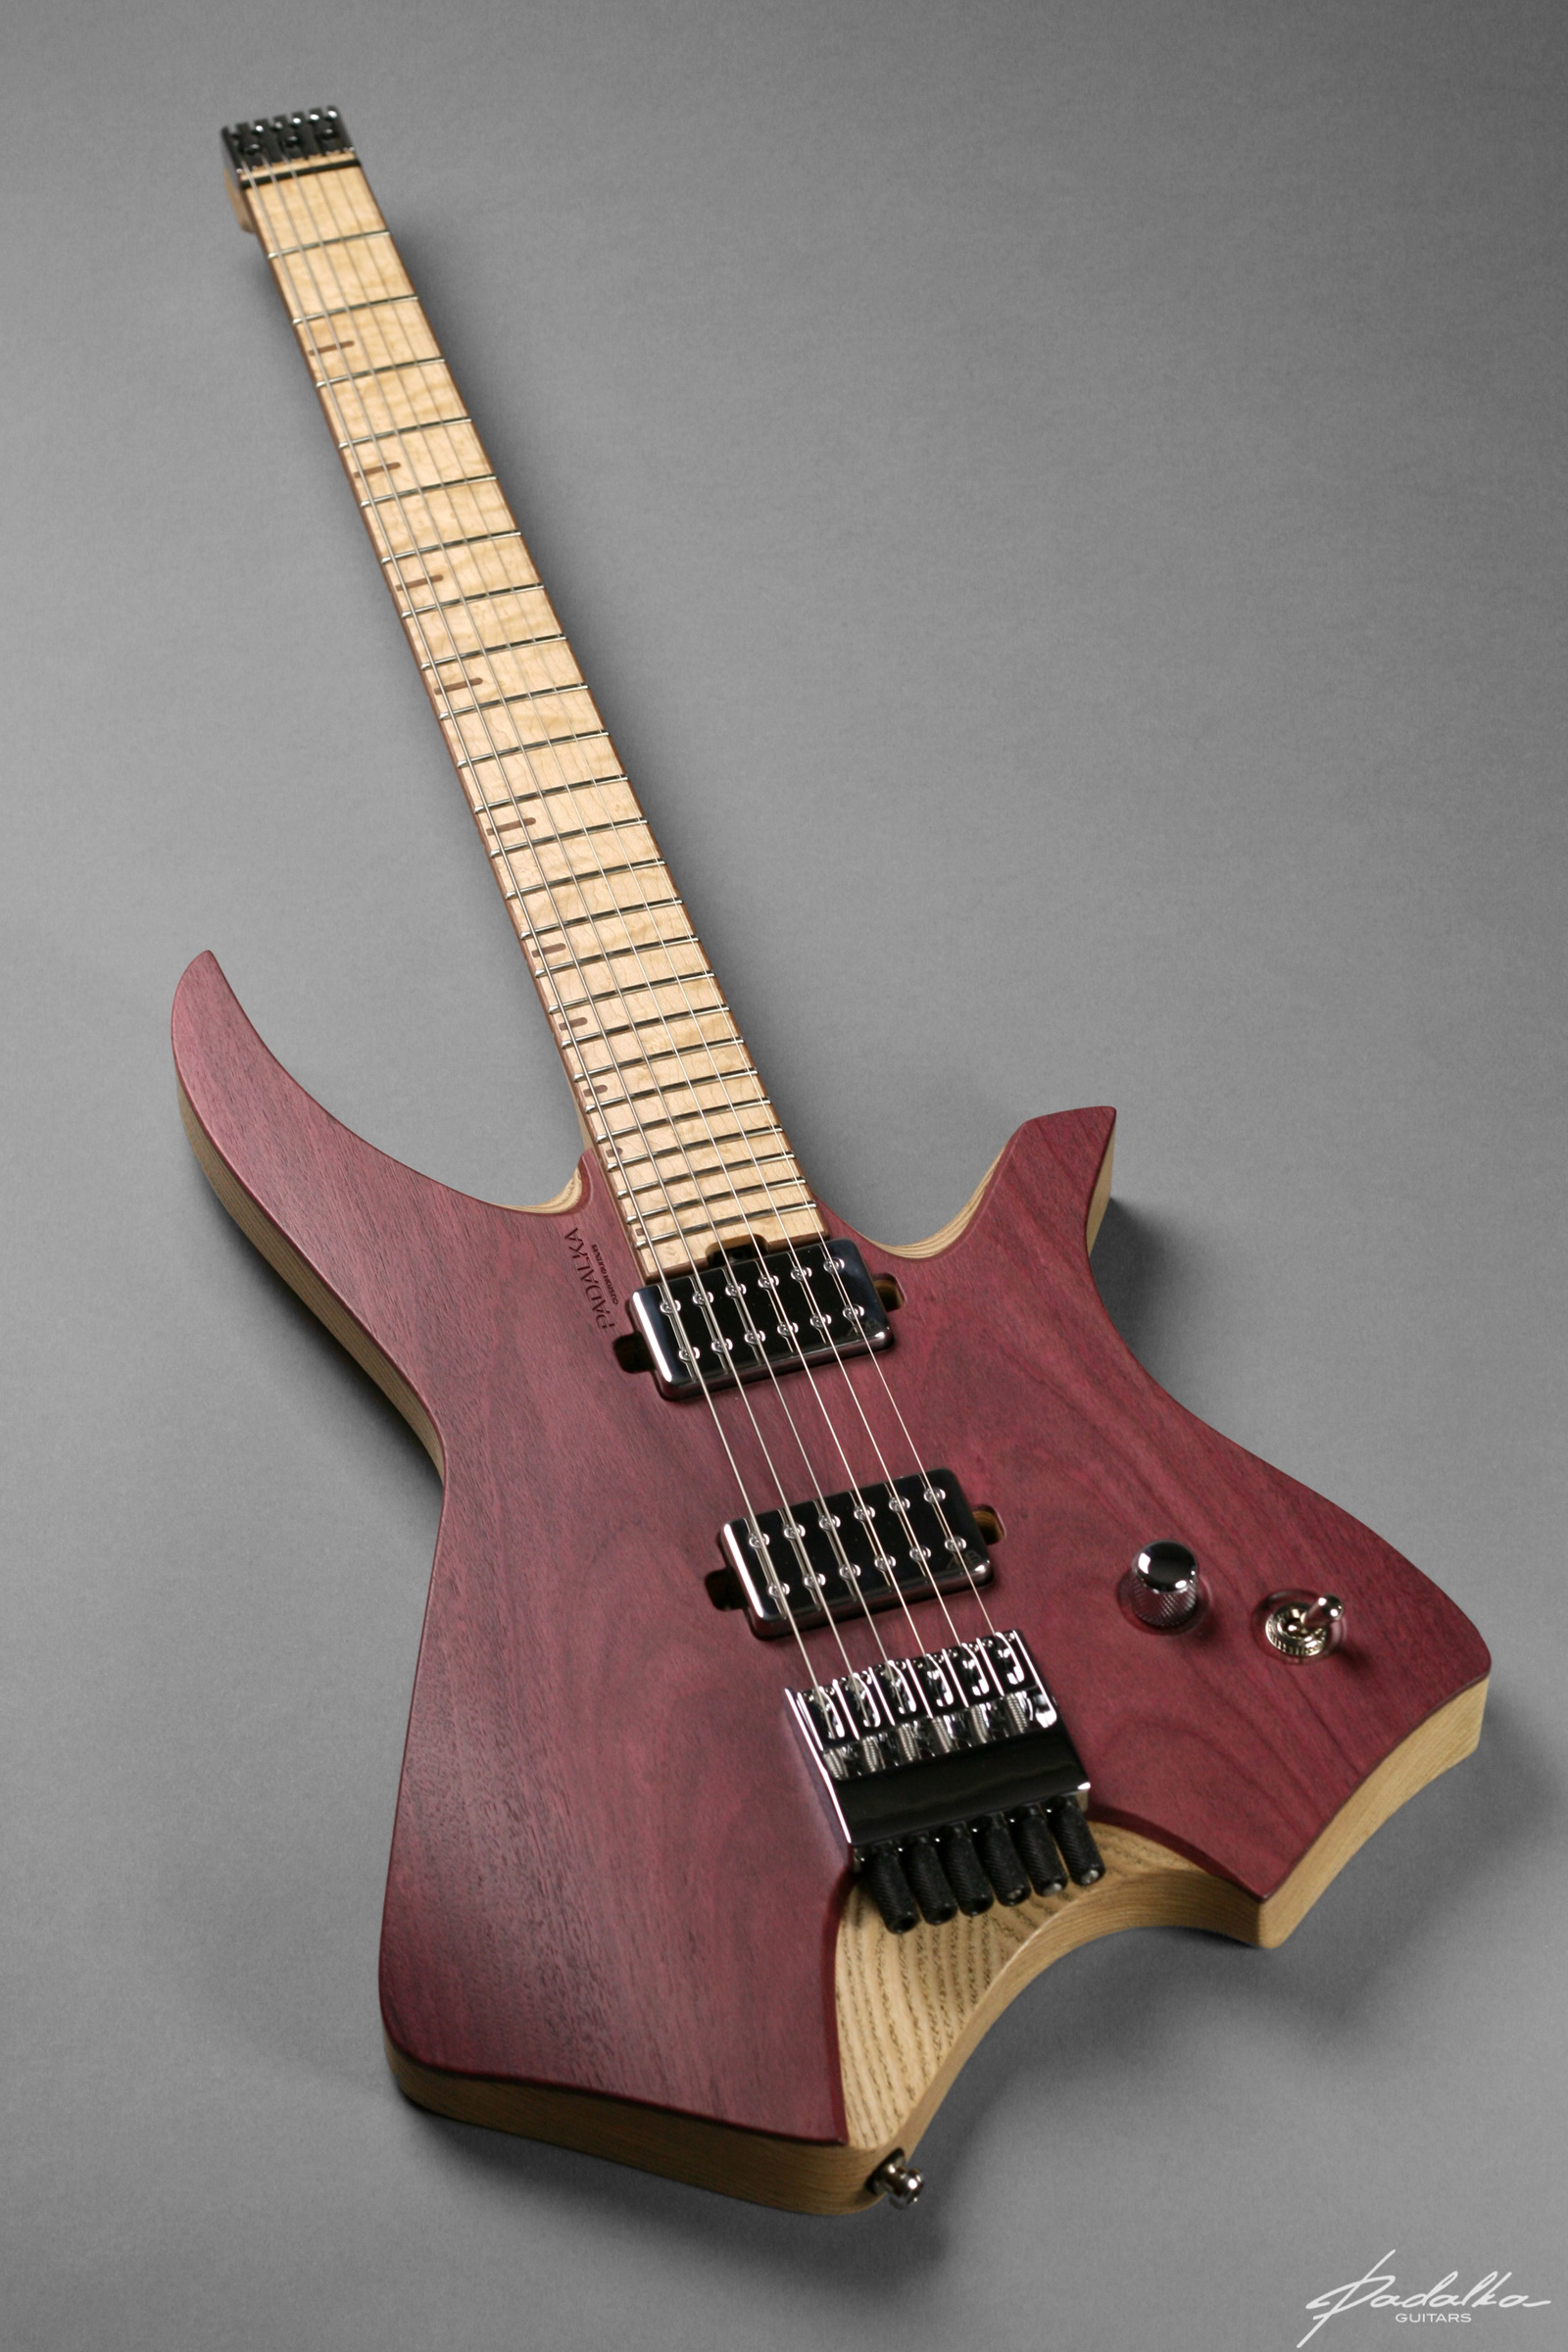 Guitar Tunings Guitar And Diy And Crafts On Pinterest